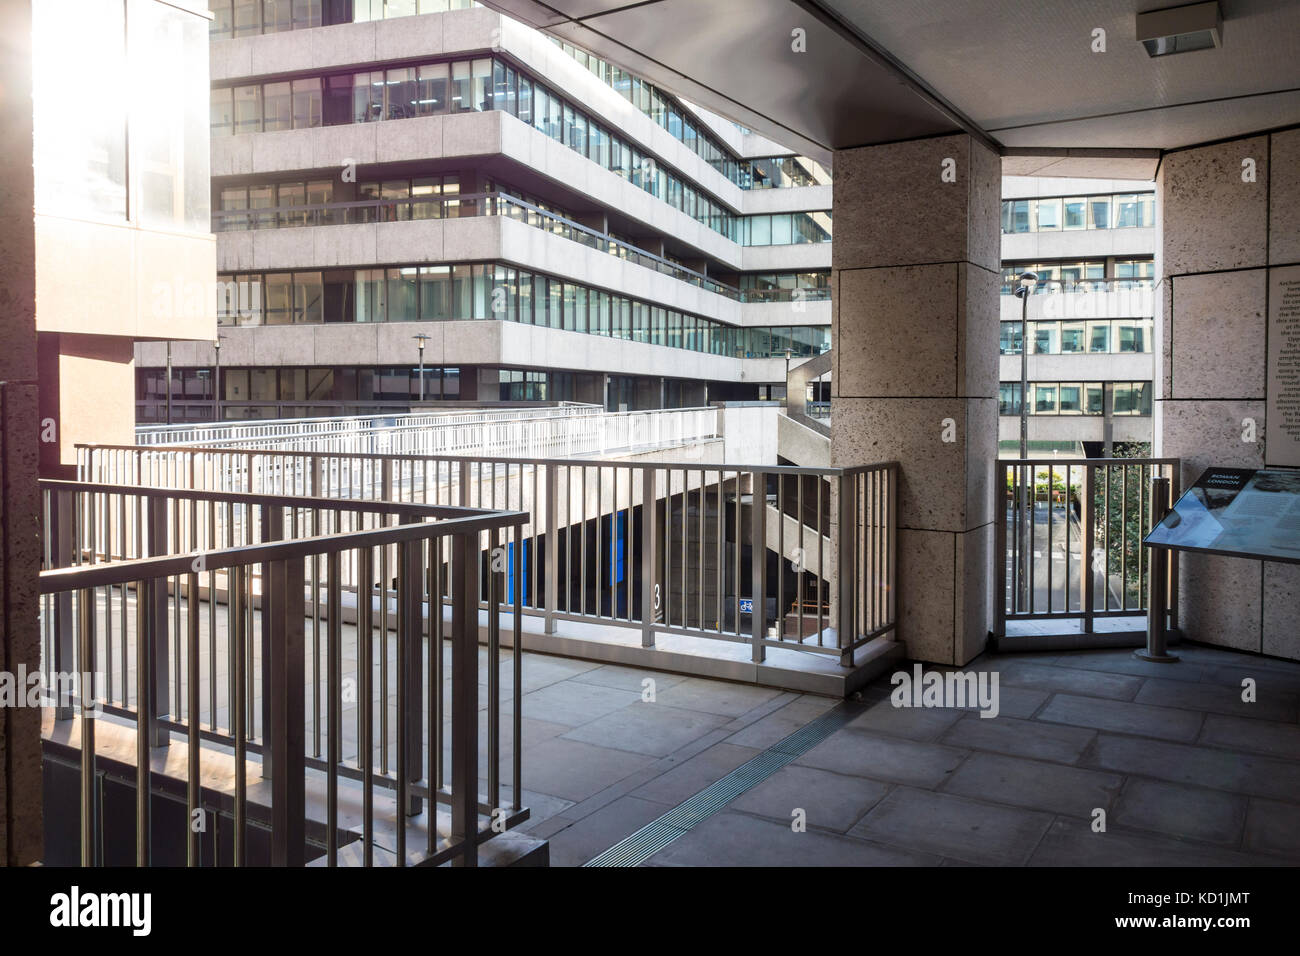 City of London Pedway Scheme, elevated walkways and pavements, Lower Thames Street, London, UK - Stock Image